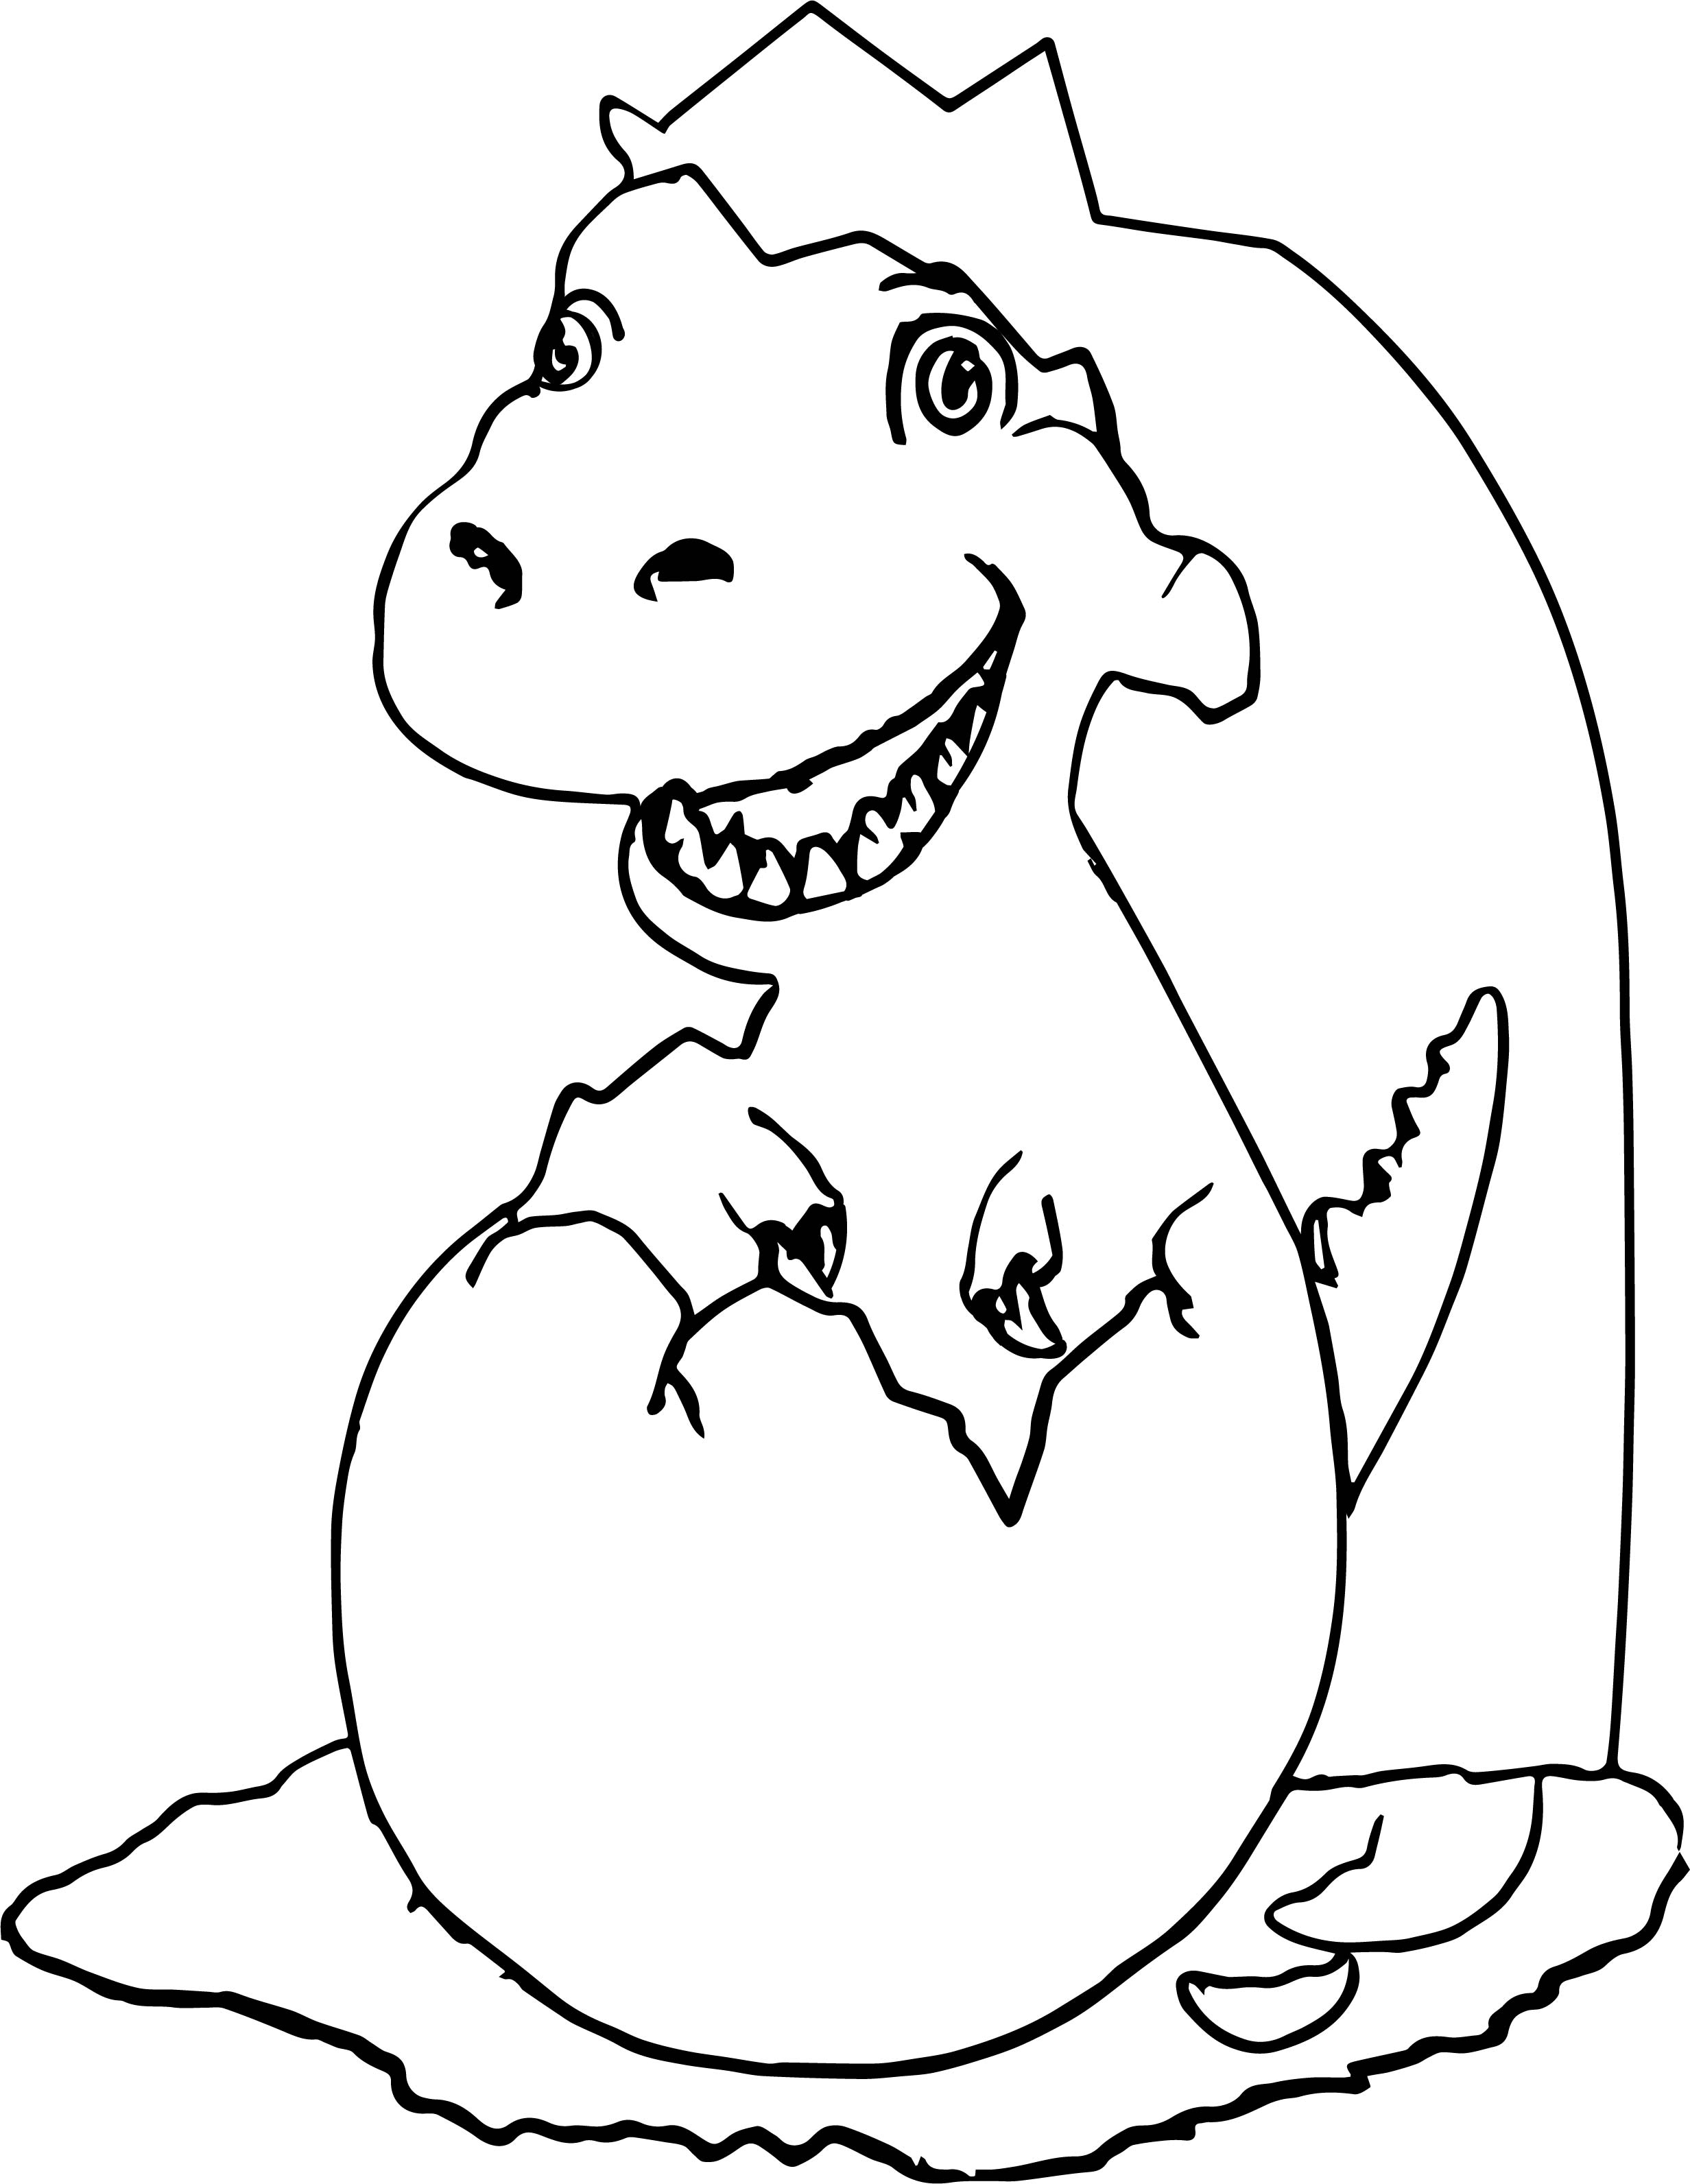 New Baby Dinosaur Coloring Pages